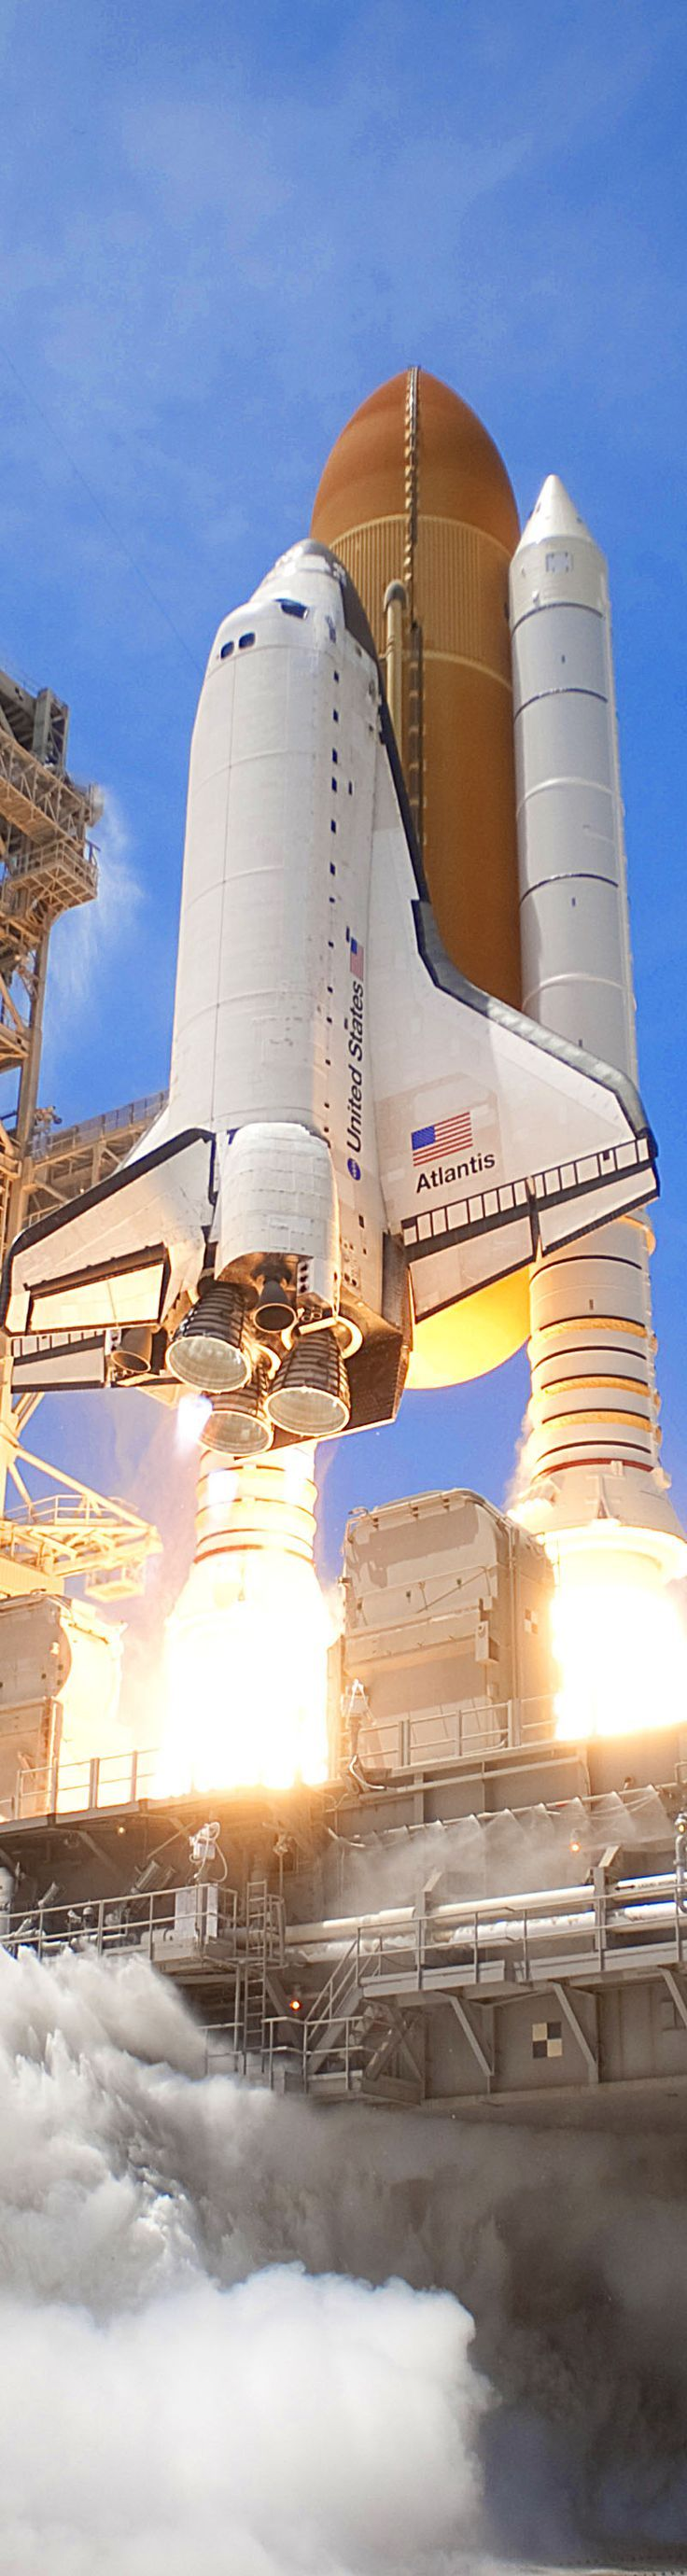 I would love to take pictures of the space shuttle launch one day. #ACFilters ACFilters4Less.com